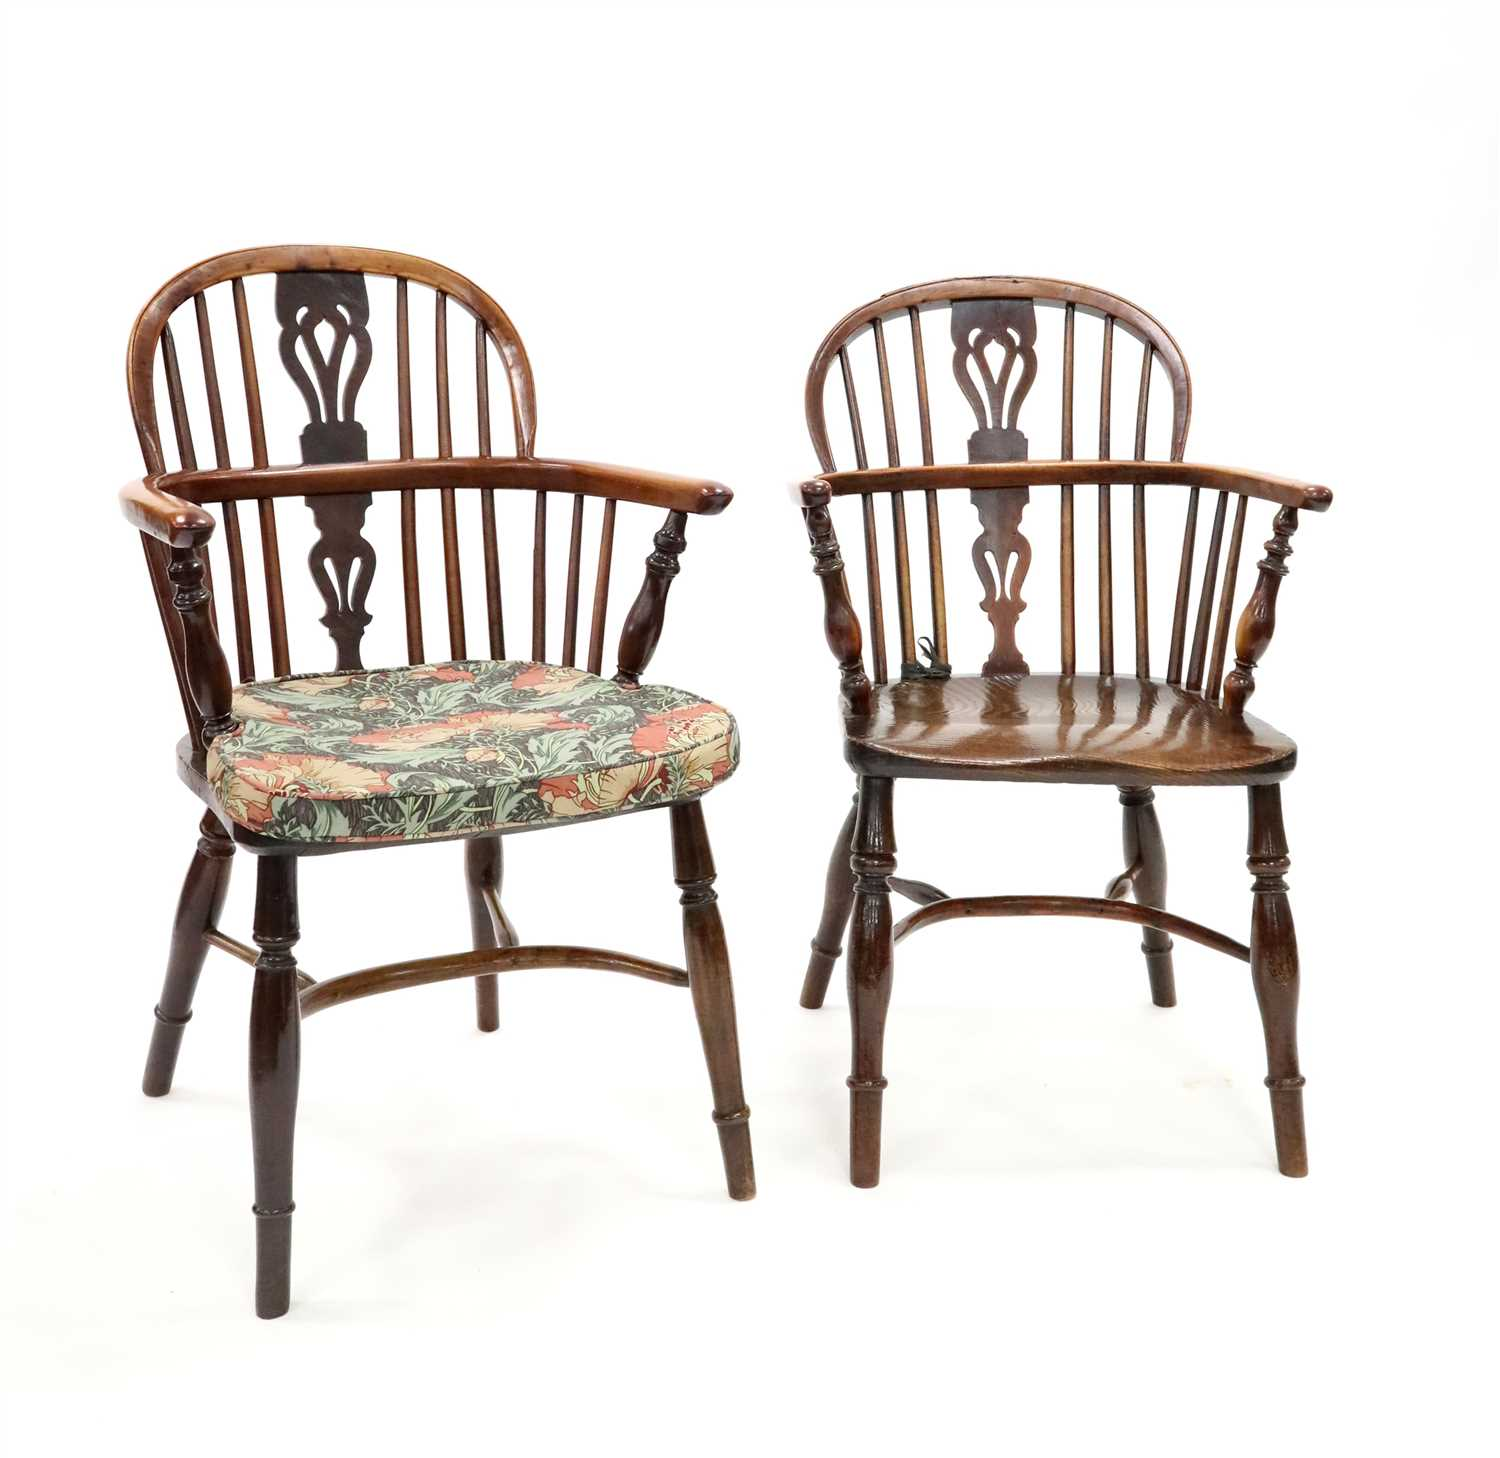 247 - A closely associated set of four 18th century Windsor stick back kitchen chairs